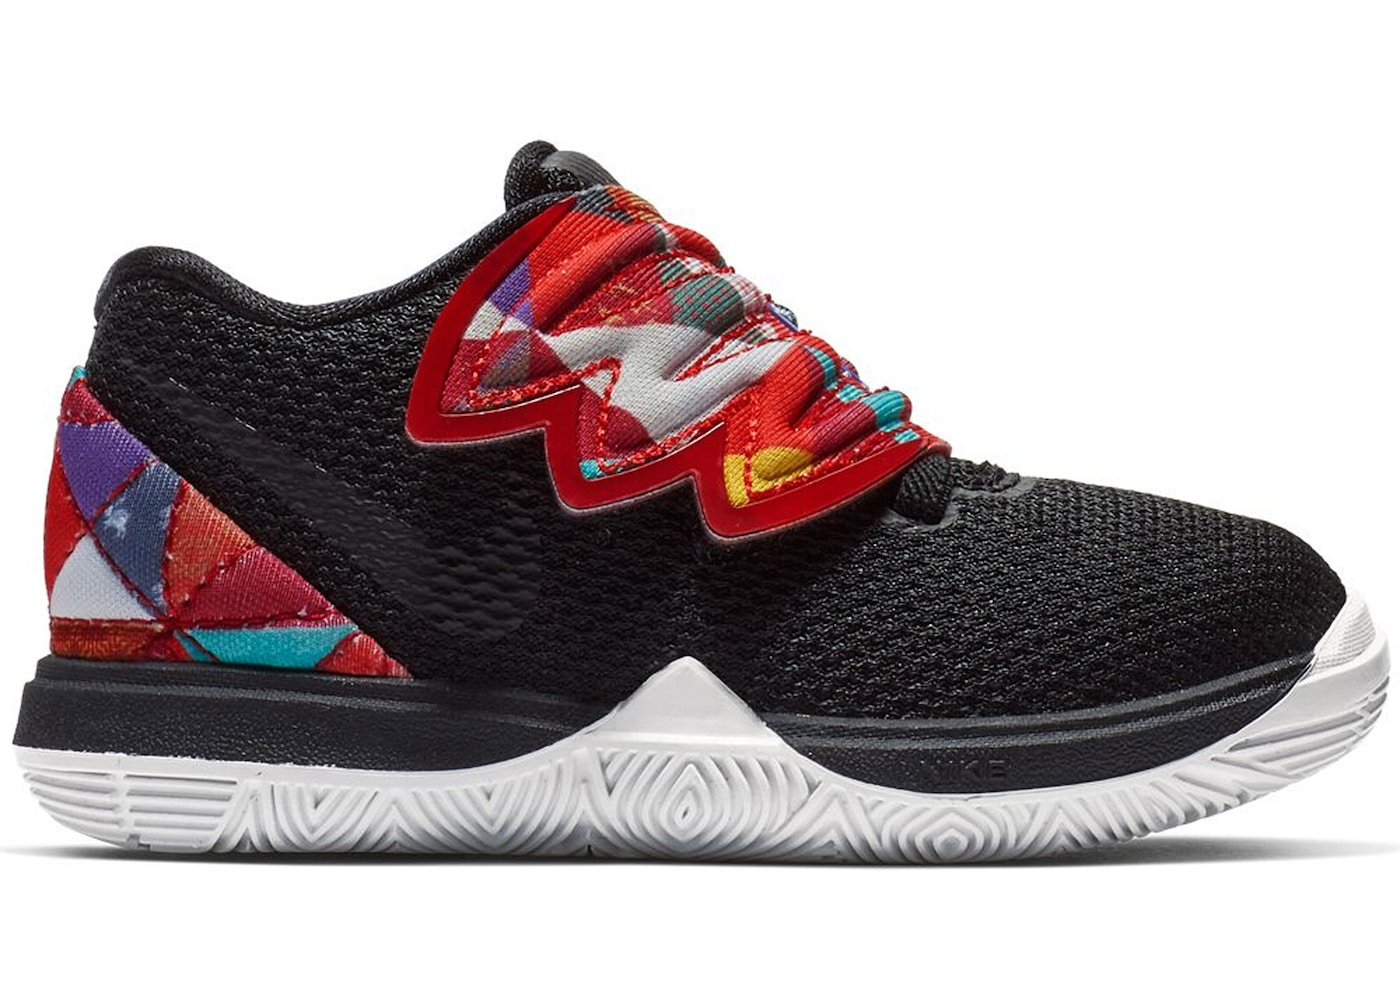 698288827b13 Nike Basketball Kyrie Shoes - Release Date